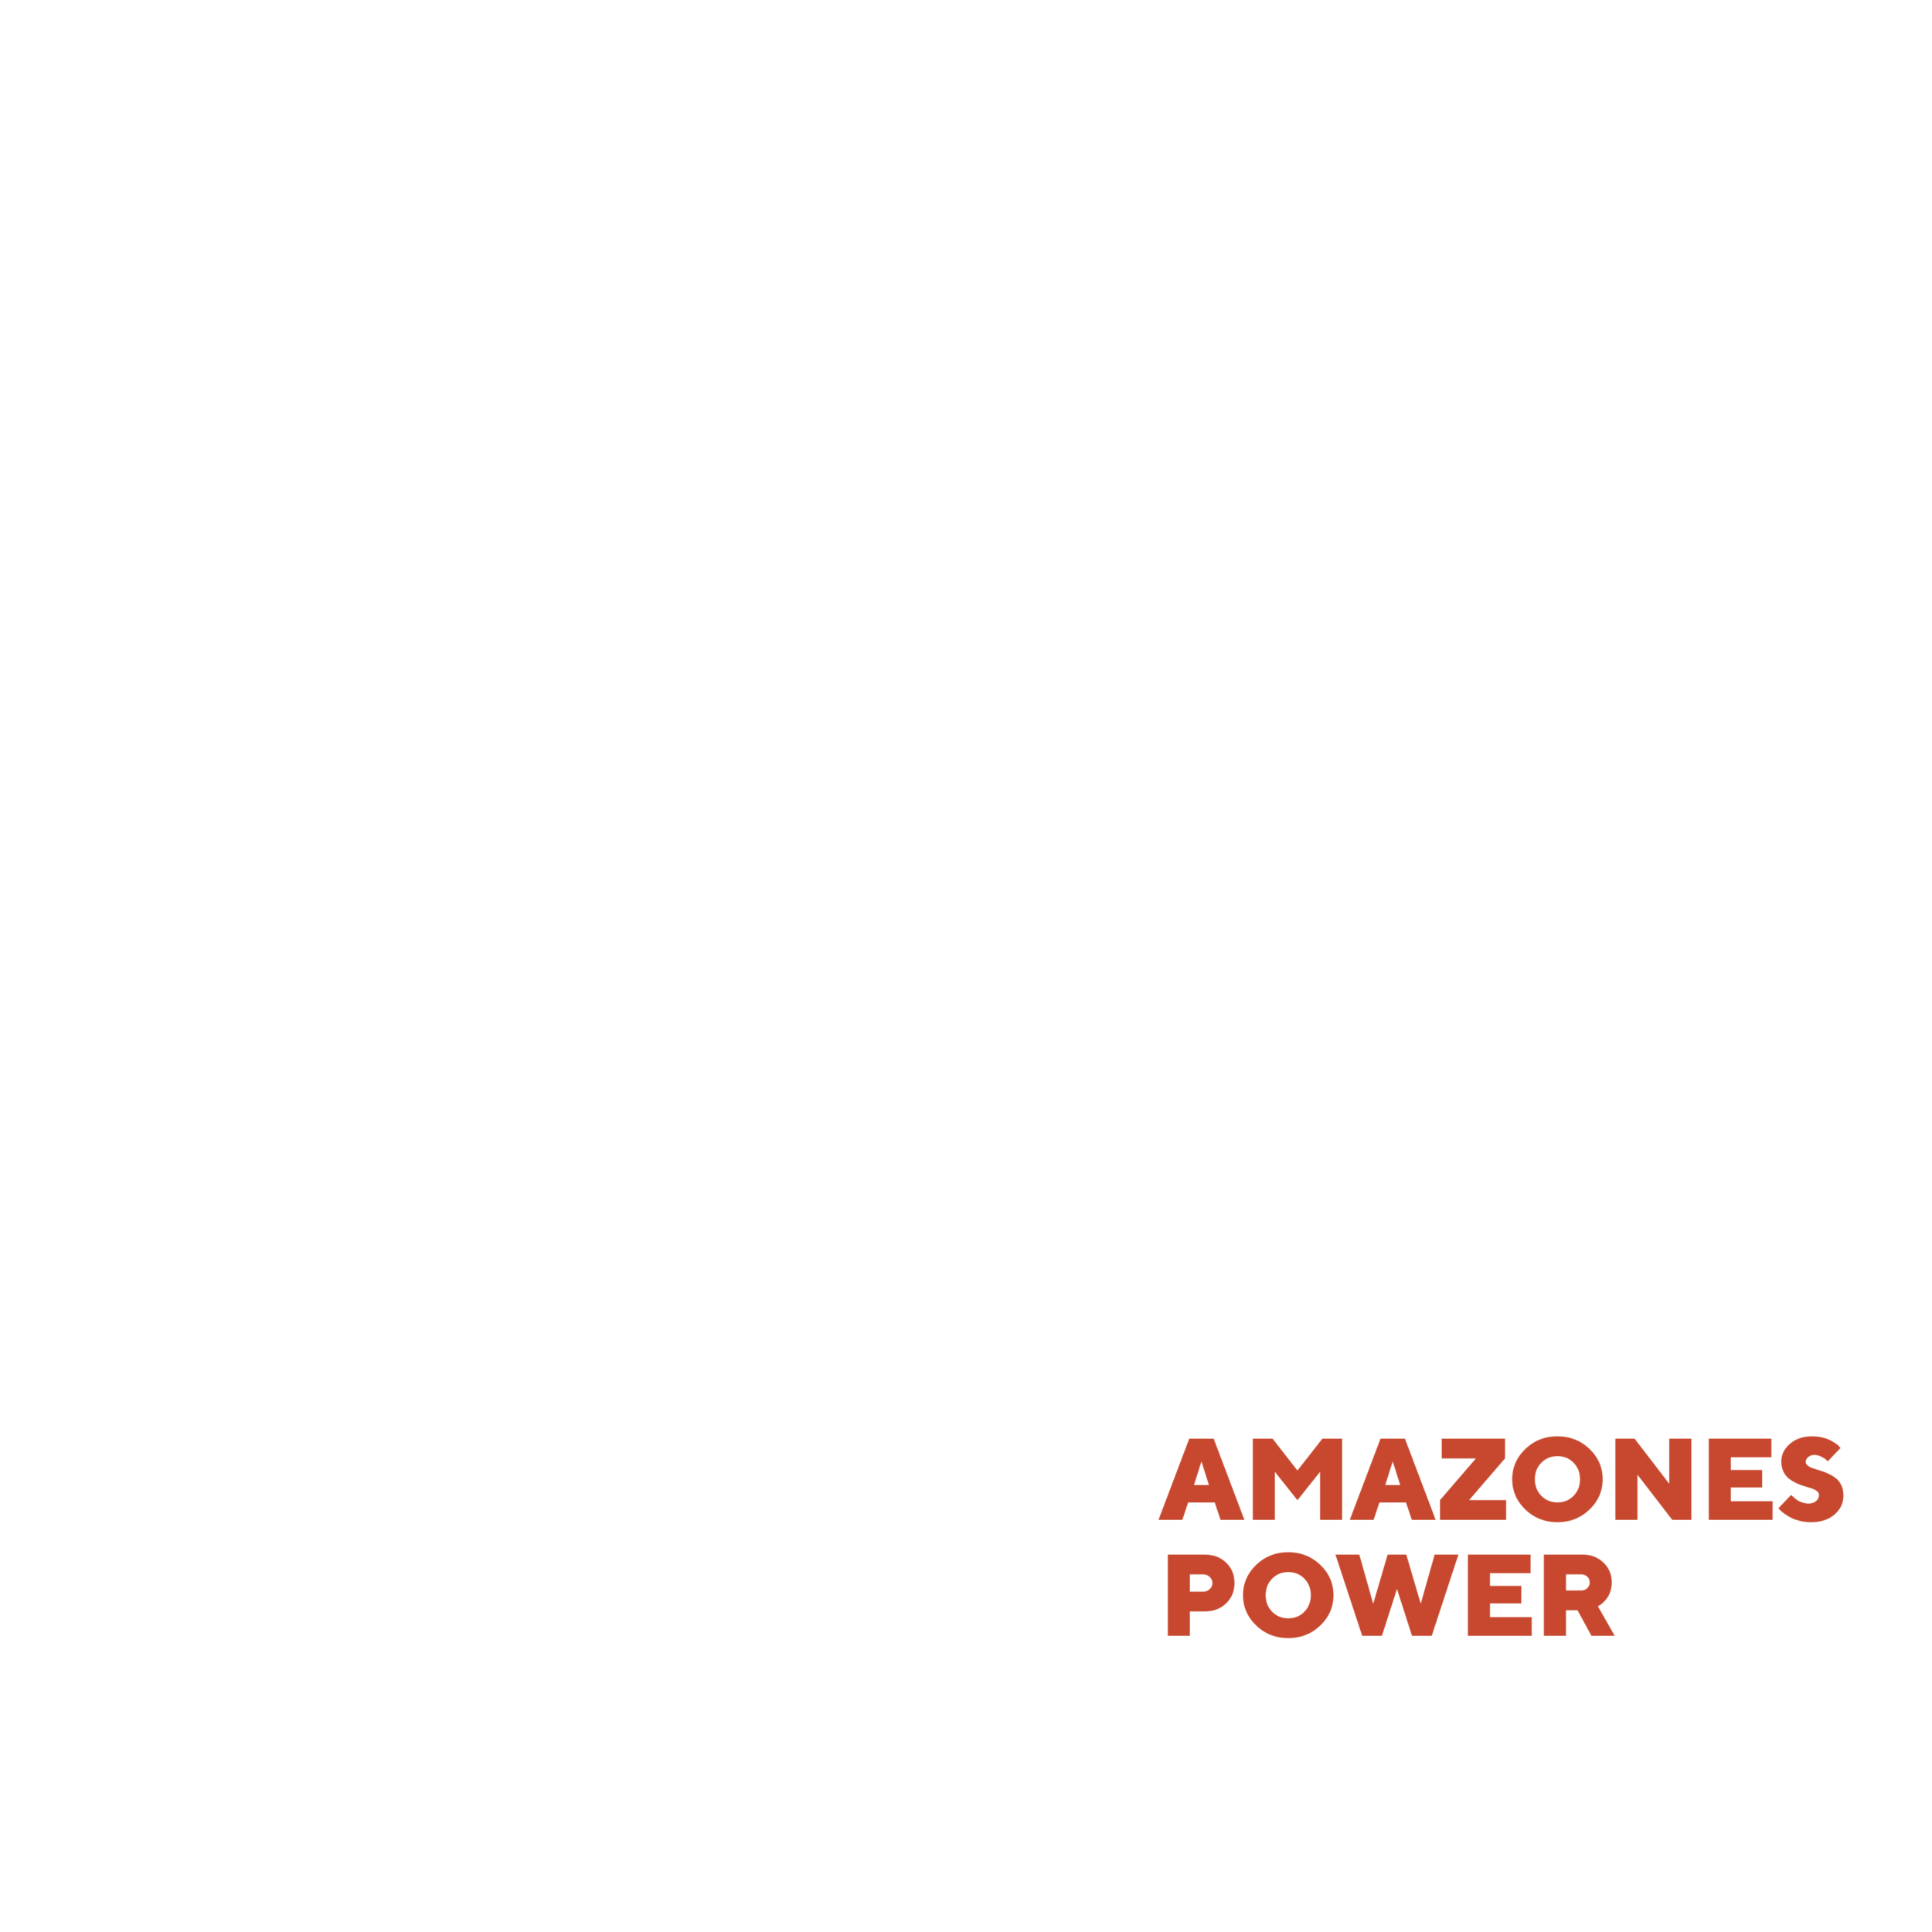 AMAZONES POWER digi.png